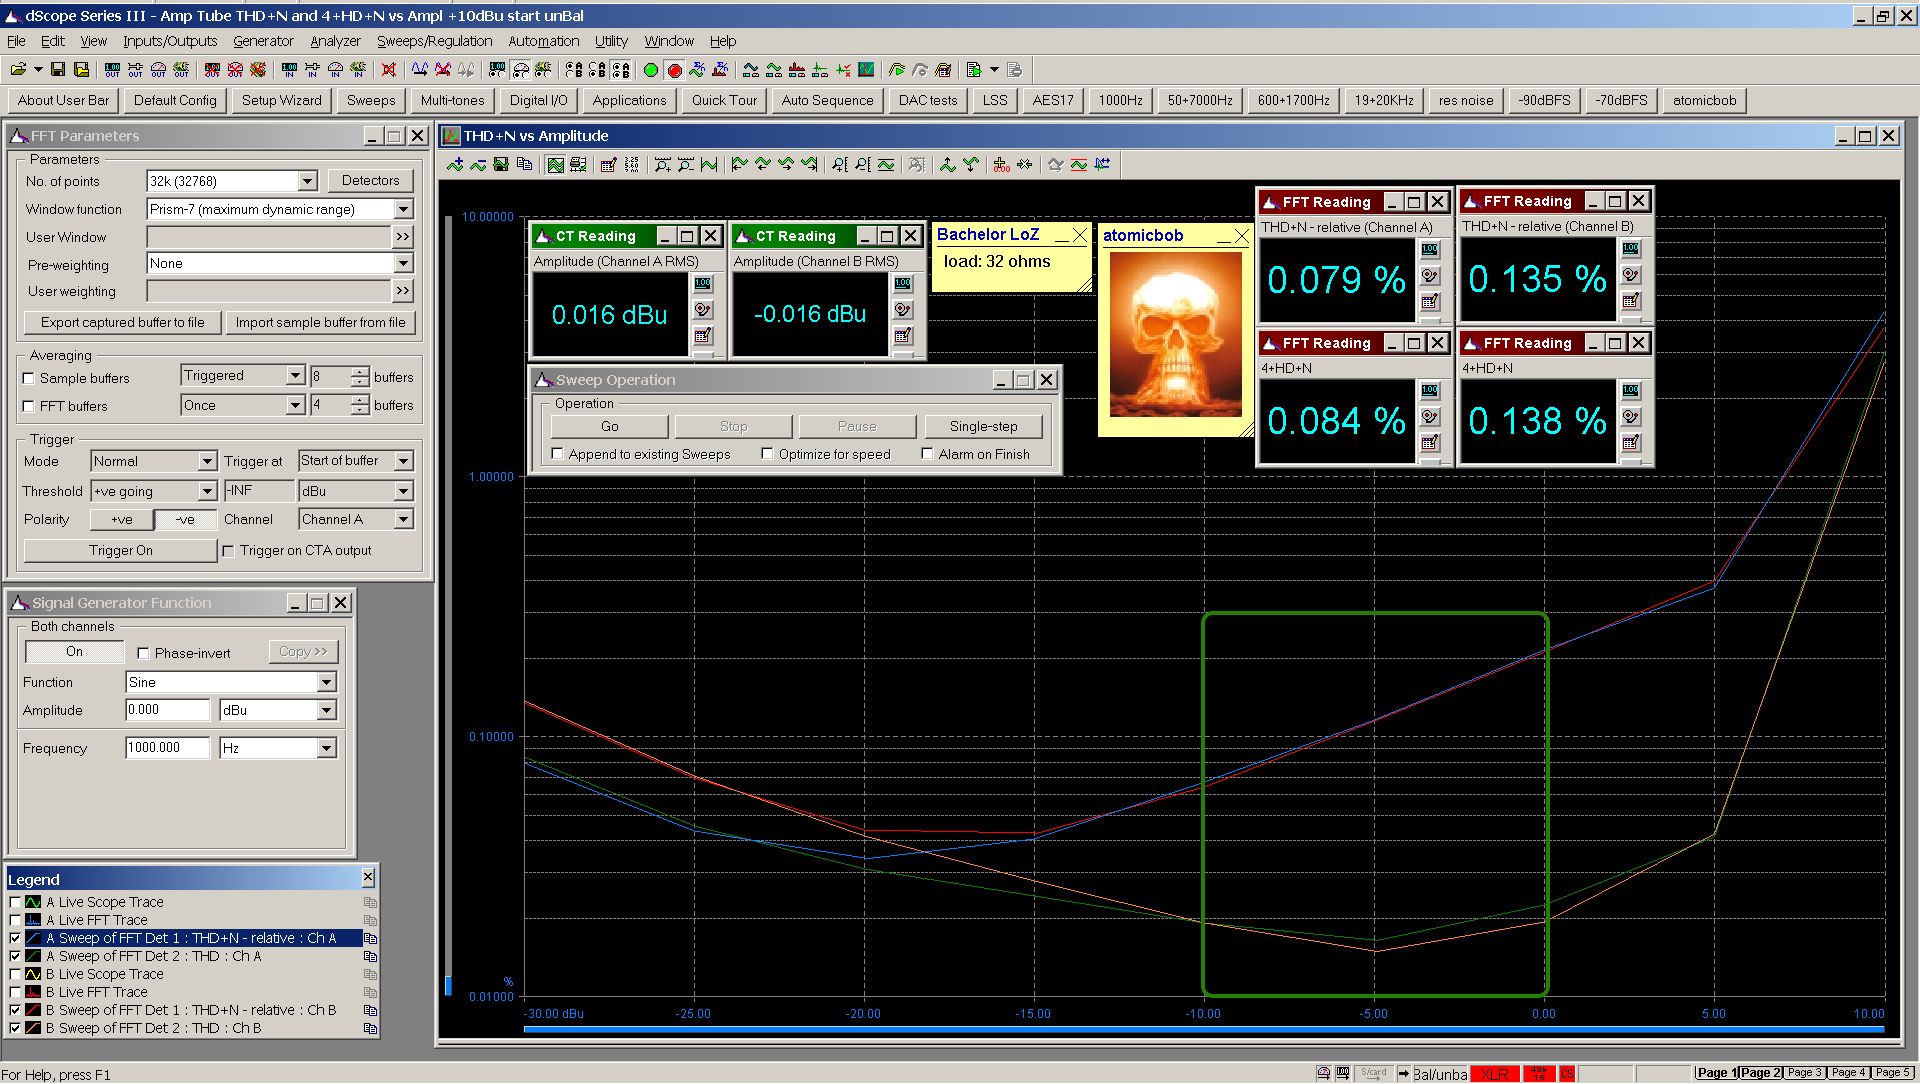 06 20200623 Bachelor 6z1p THD+N 4+HD+N vs dBu 1000Hz 32R HiZ 0dB gain - annotated 1.png